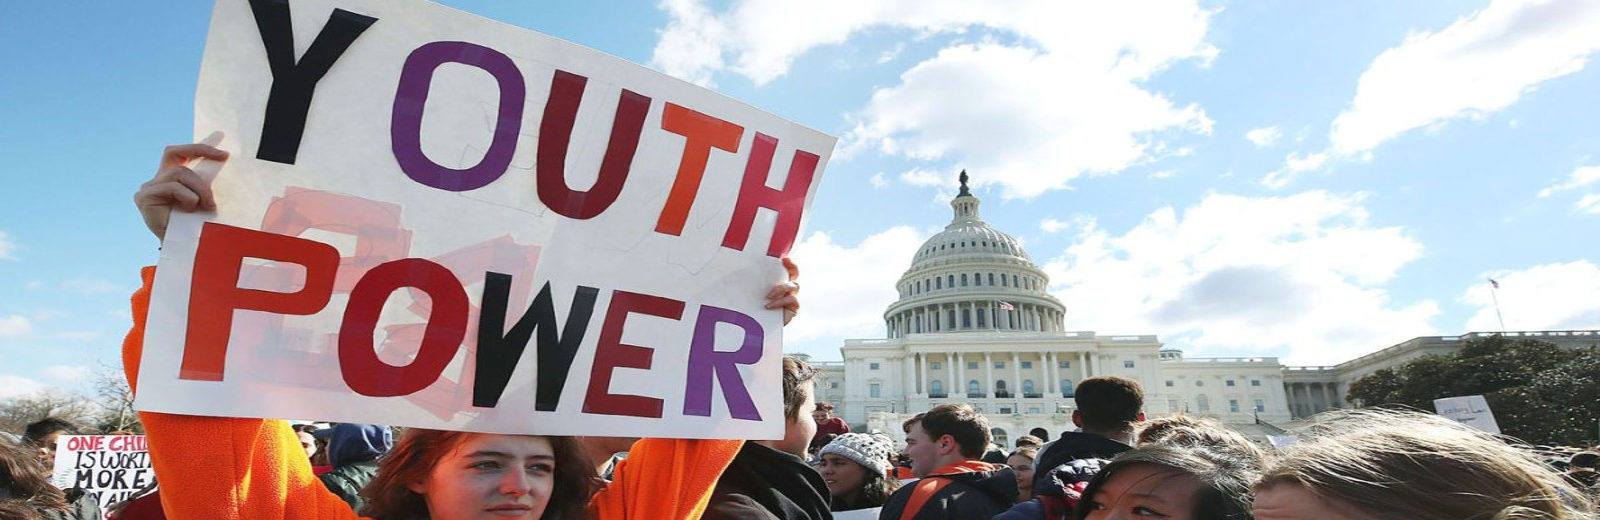 "image of teens protesting in front of the White House holding a sign with the words ""Youth Rights"""